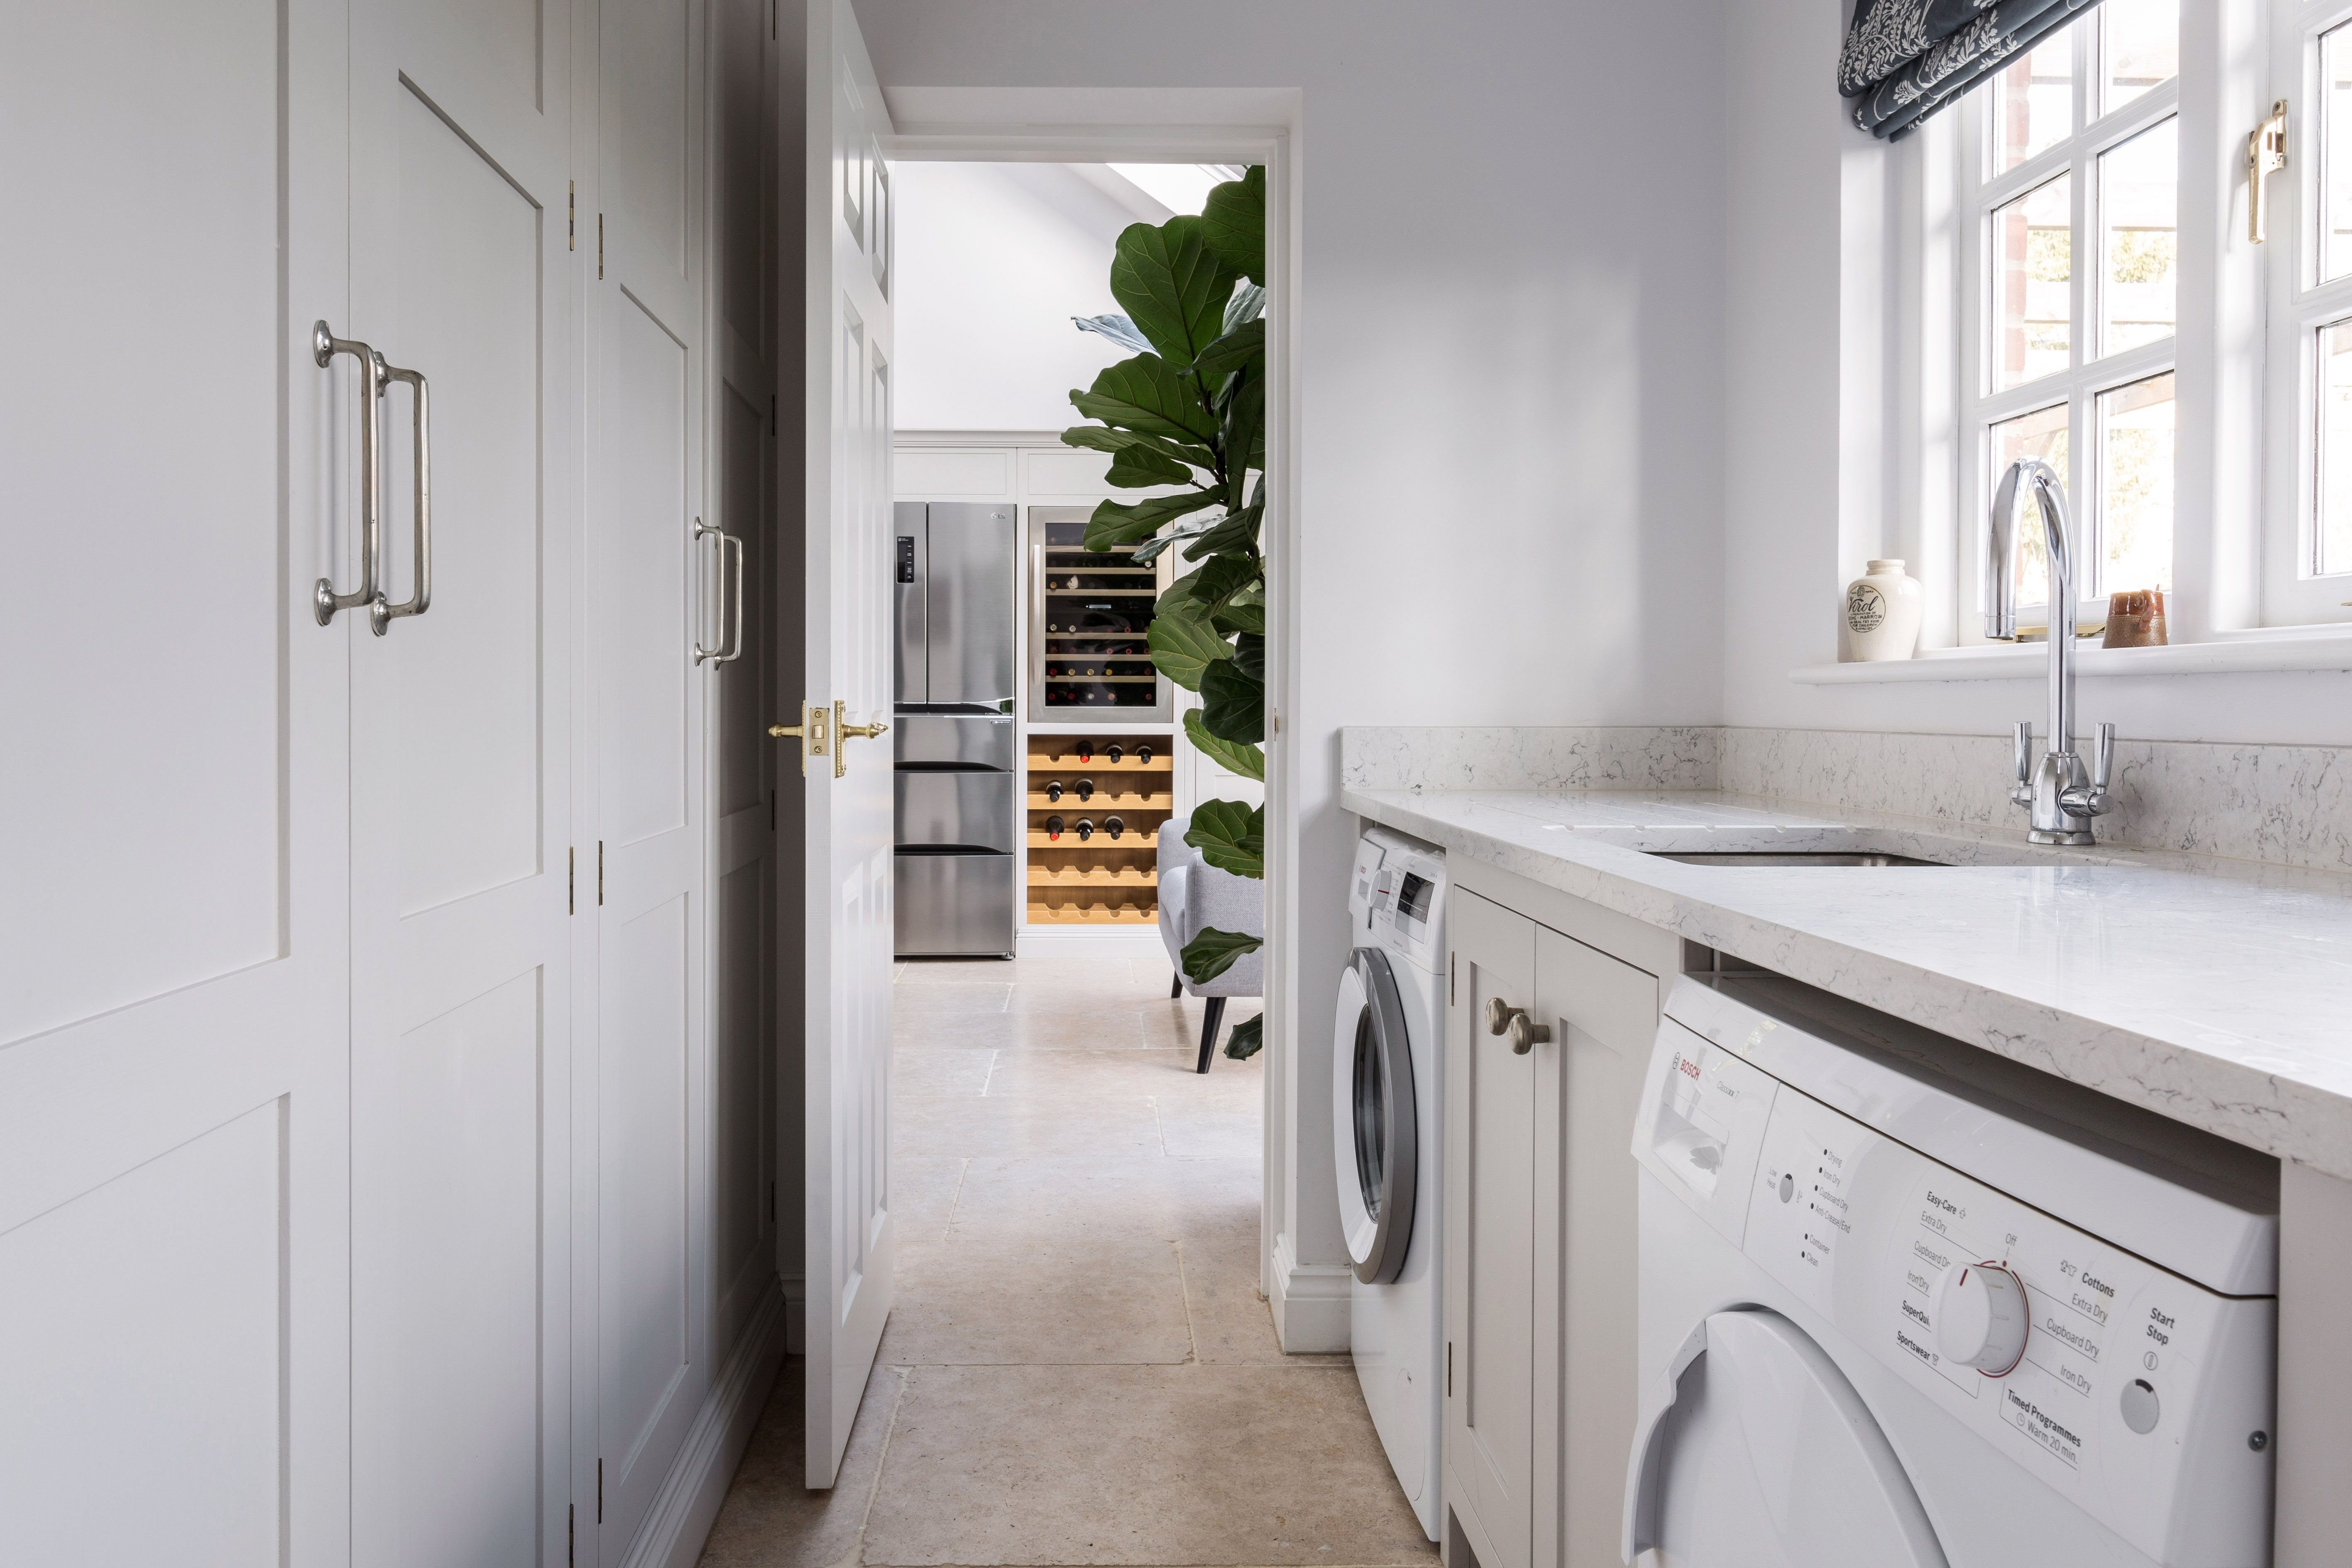 A Simple Run Of Floor To Ceiling Cabinets Provide Lots Of Needed Storage Space Utility Rooms Utility Room Designs Boot Room